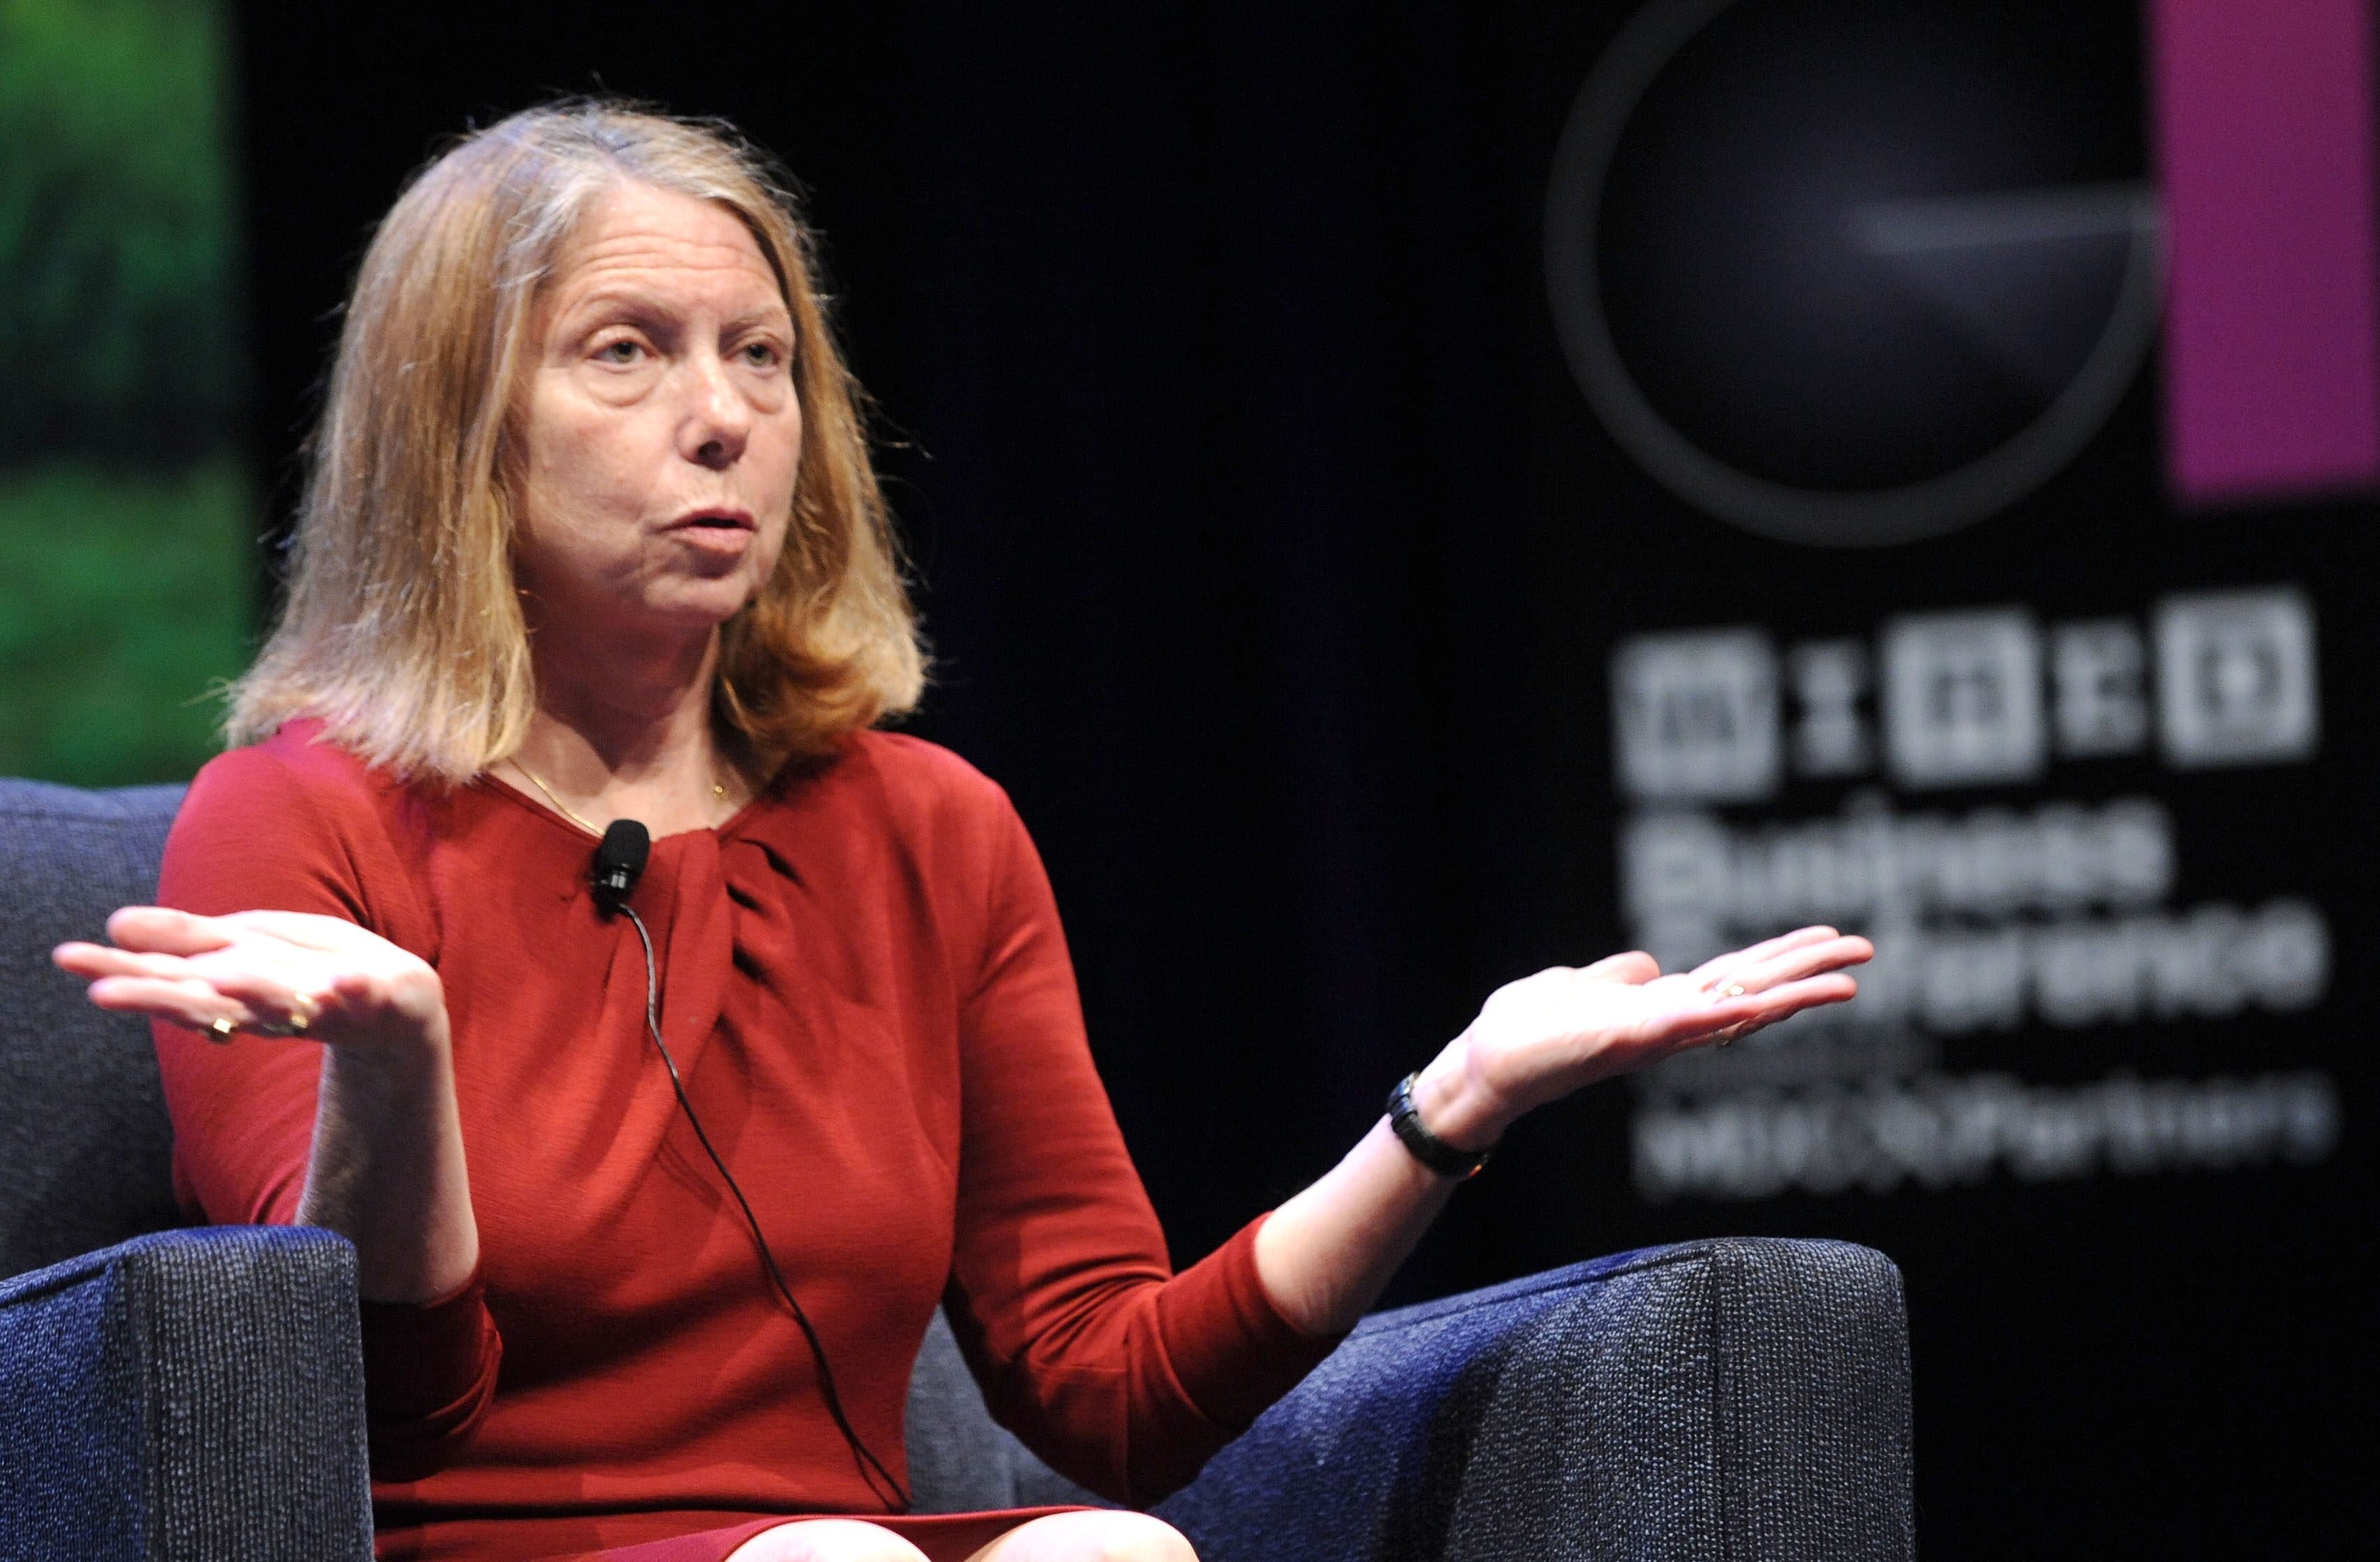 Executive Editor of The New York Times Jill Abramson attends the WIRED Business Conference: Think Bigger at Museum of Jewish Heritage on May 7, 2013 in New York City.